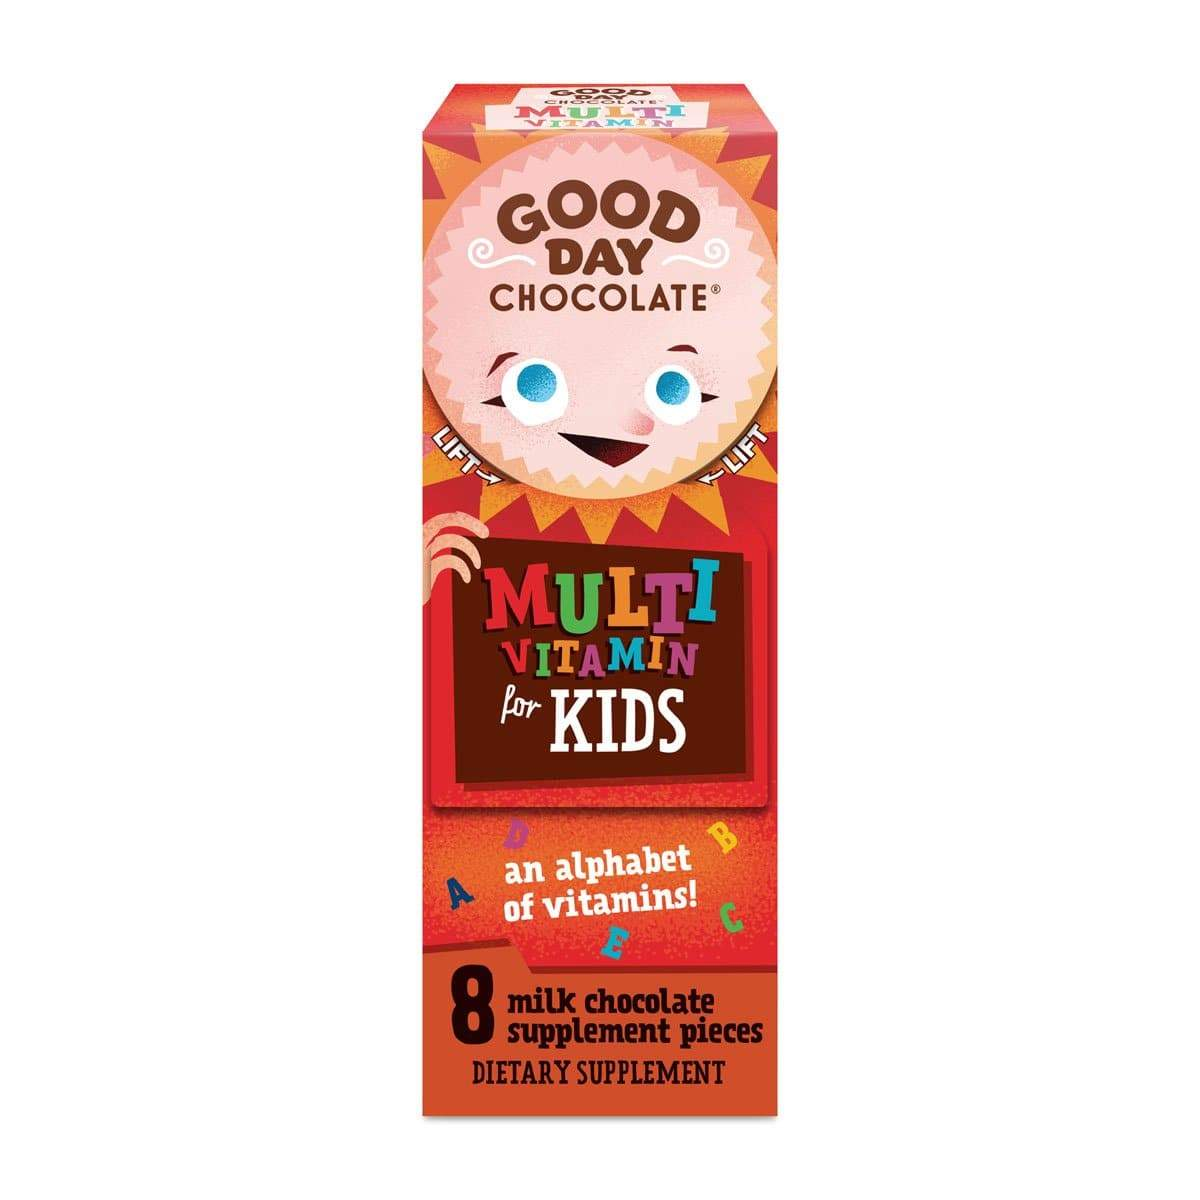 Good Day Chocolate for Kids - Snacks Single Box